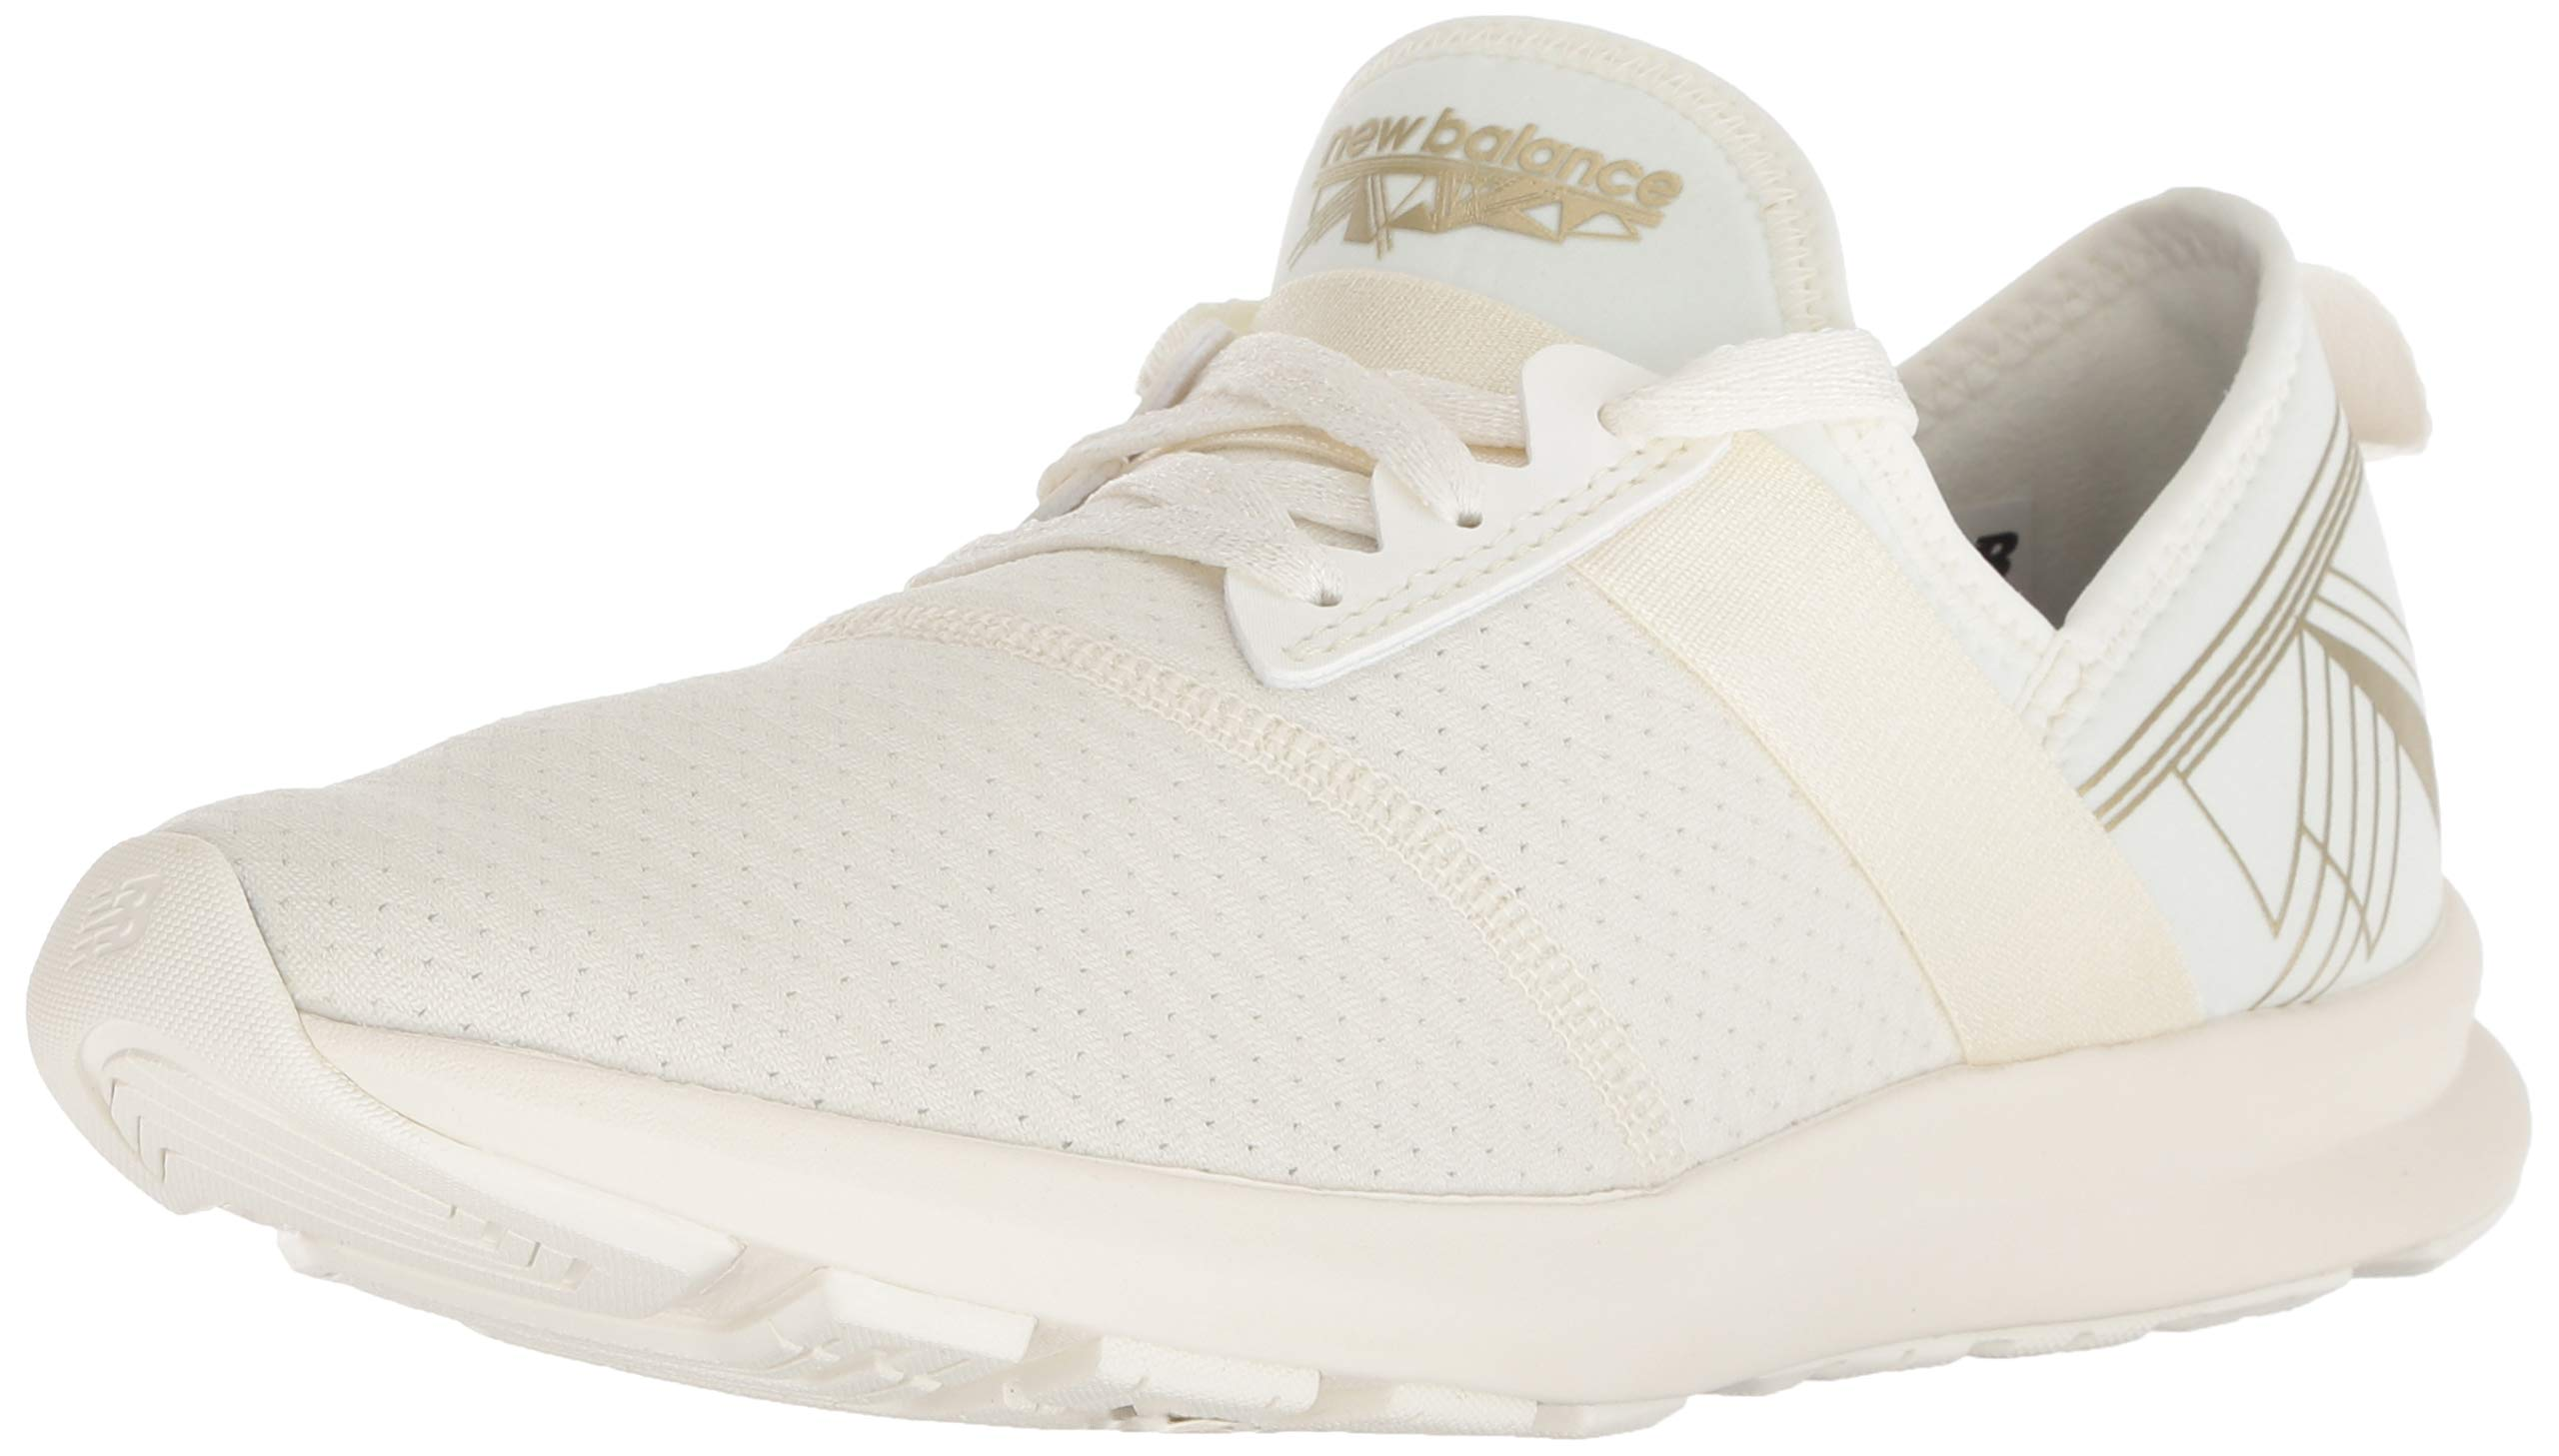 New Balance Women's Nergize V1 FuelCore Sneaker,SEA SALT,7.5 B US by New Balance